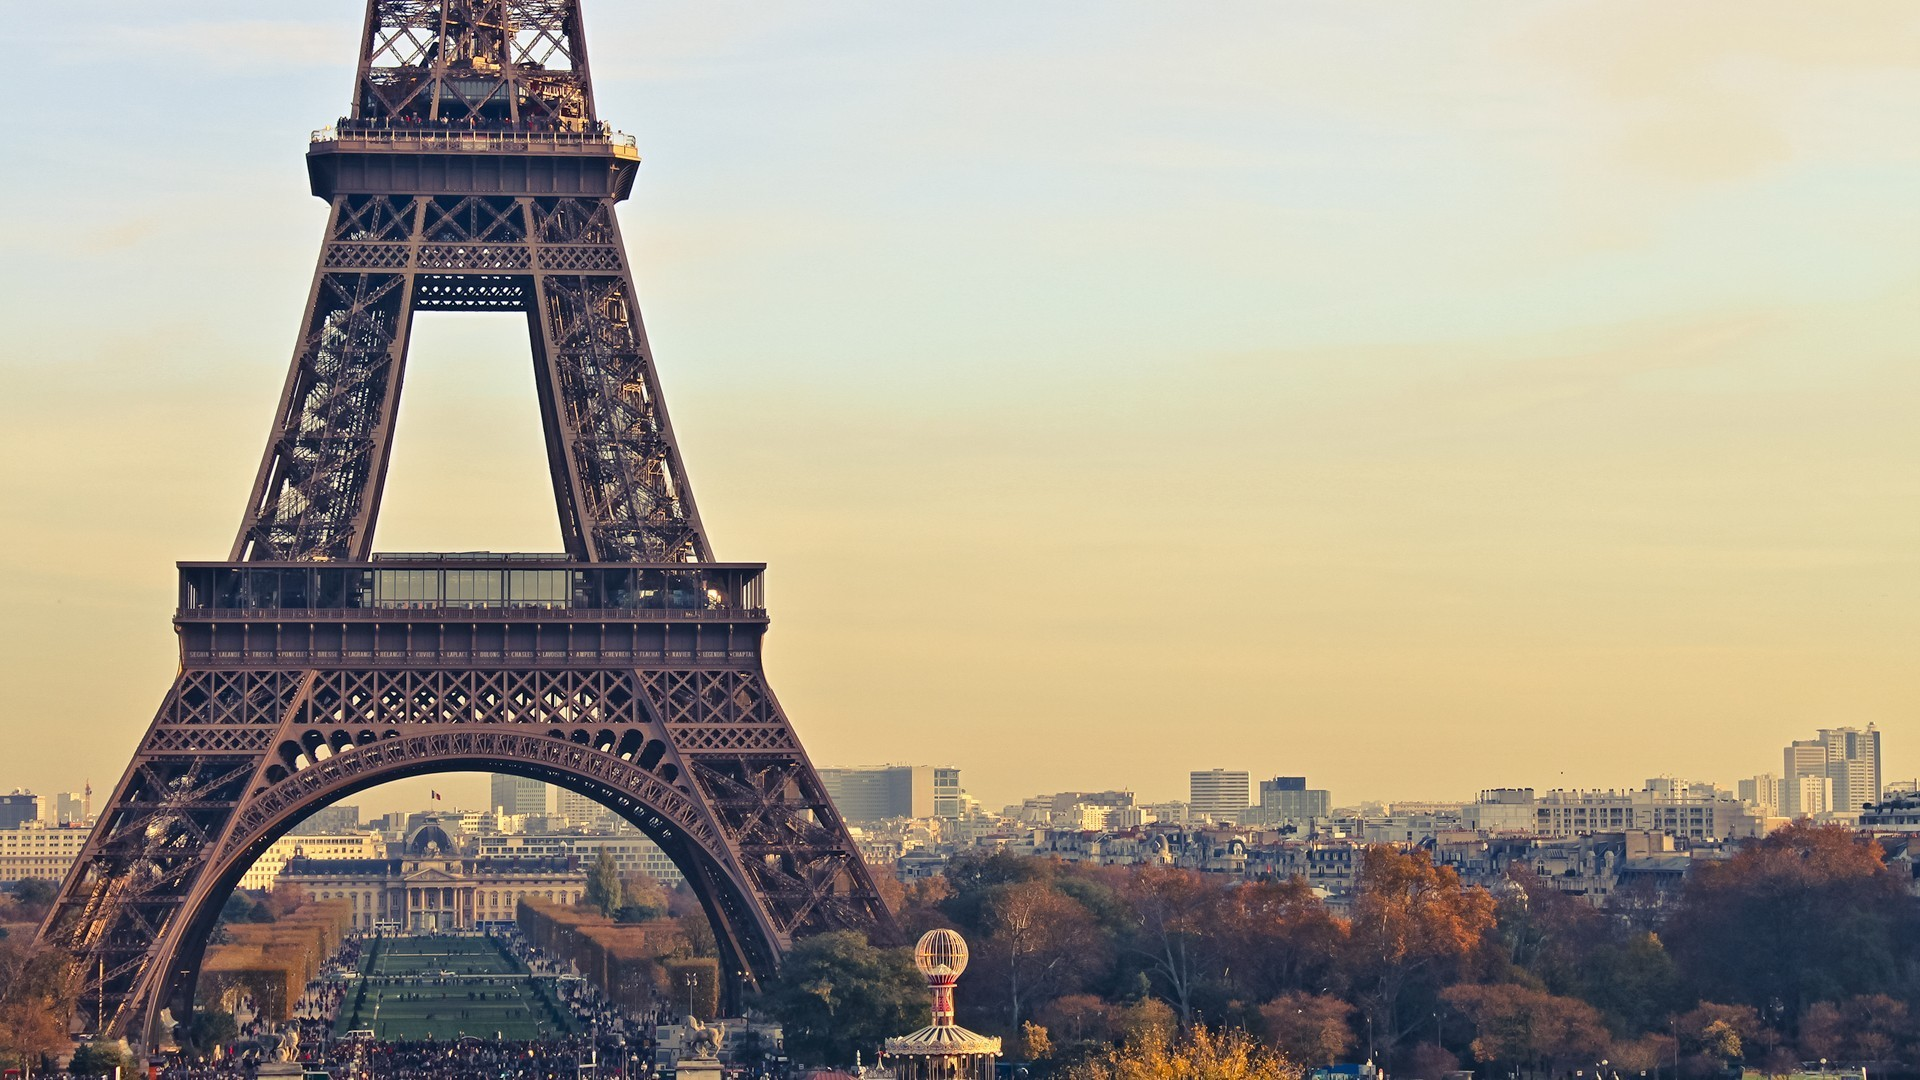 Eiffel Tower Paris Cityscapes Sunset Wallpaper Allwallpaper In